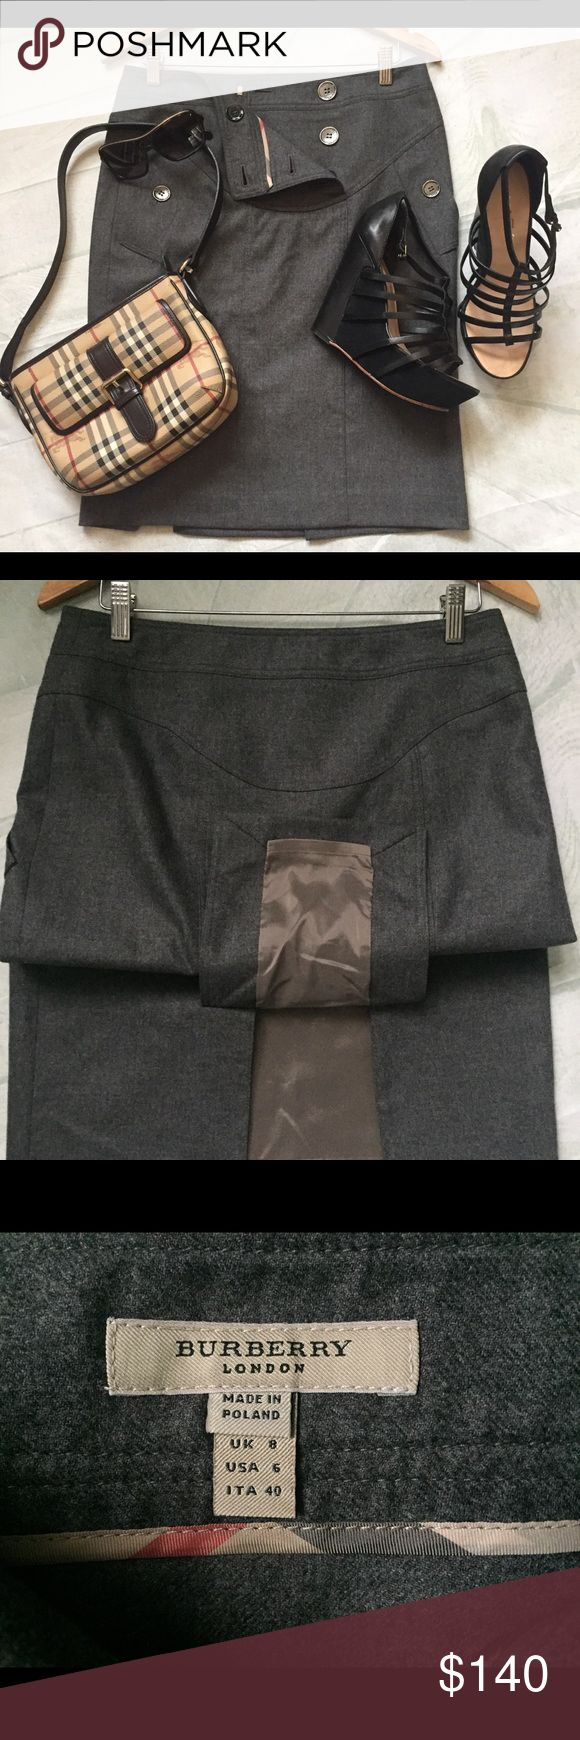 """Burberry London Wool Pencil Skirt Gray Authentic 6 Classy, Chic, Sophisticated!  Authentic Burberry London wool blend Pencil skirt, size US 8.  Very good condition, shows minor signs of wear, light piling and slightly wrinkled. Features: ✔️6 button double breasted front plank, Burberry logo stamped buttons in pewter tone ✔️seaming detail, side pockets, double slit back vent , fully lined ✔️measures: 16 """" across waist band, 19"""" across hip, 23"""" in length from waist to hem.  Offers welcome…"""